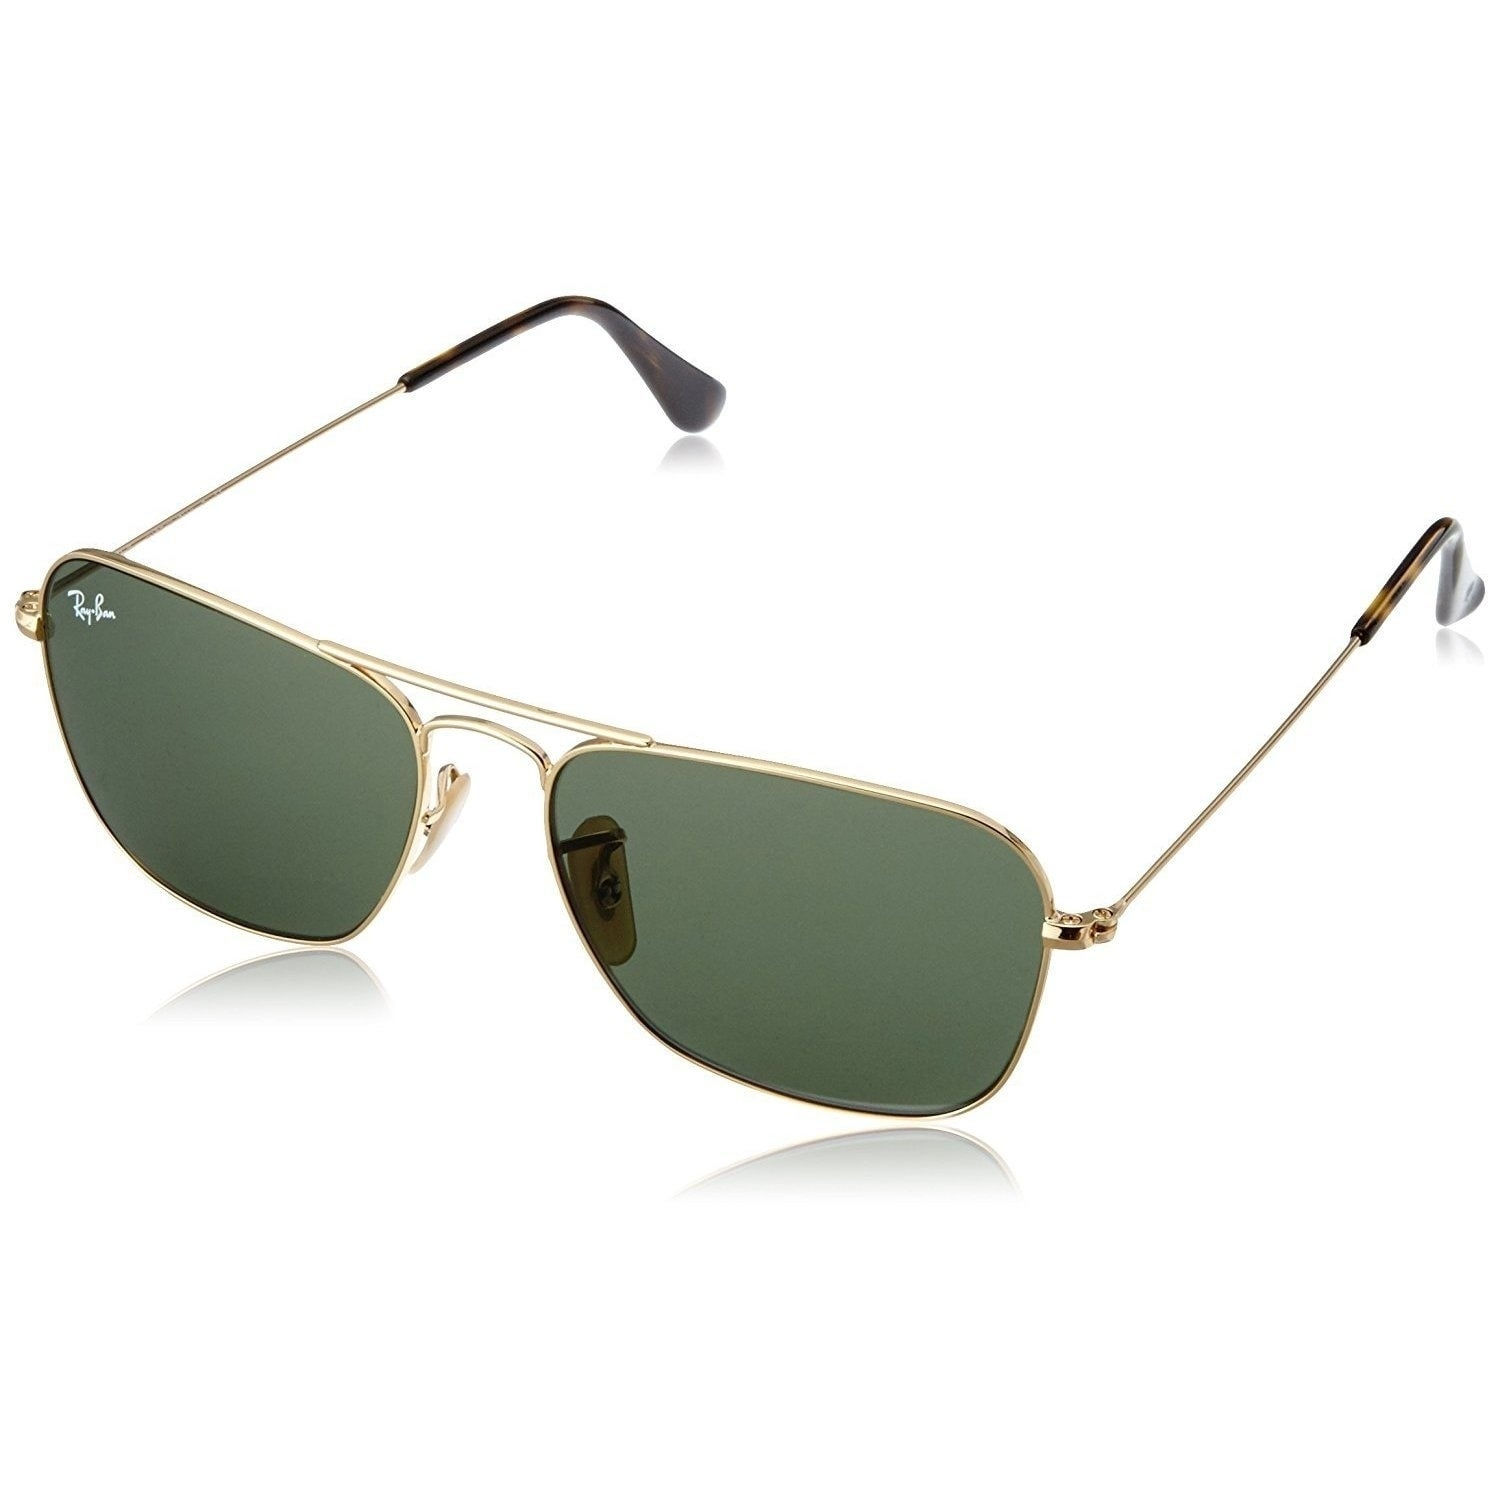 a58d5561f3bbd Shop Ray-Ban Caravan RB3136 181 Unisex Gold Frame Green Classic 58mm Lens  Sunglasses - Free Shipping Today - Overstock - 14988796